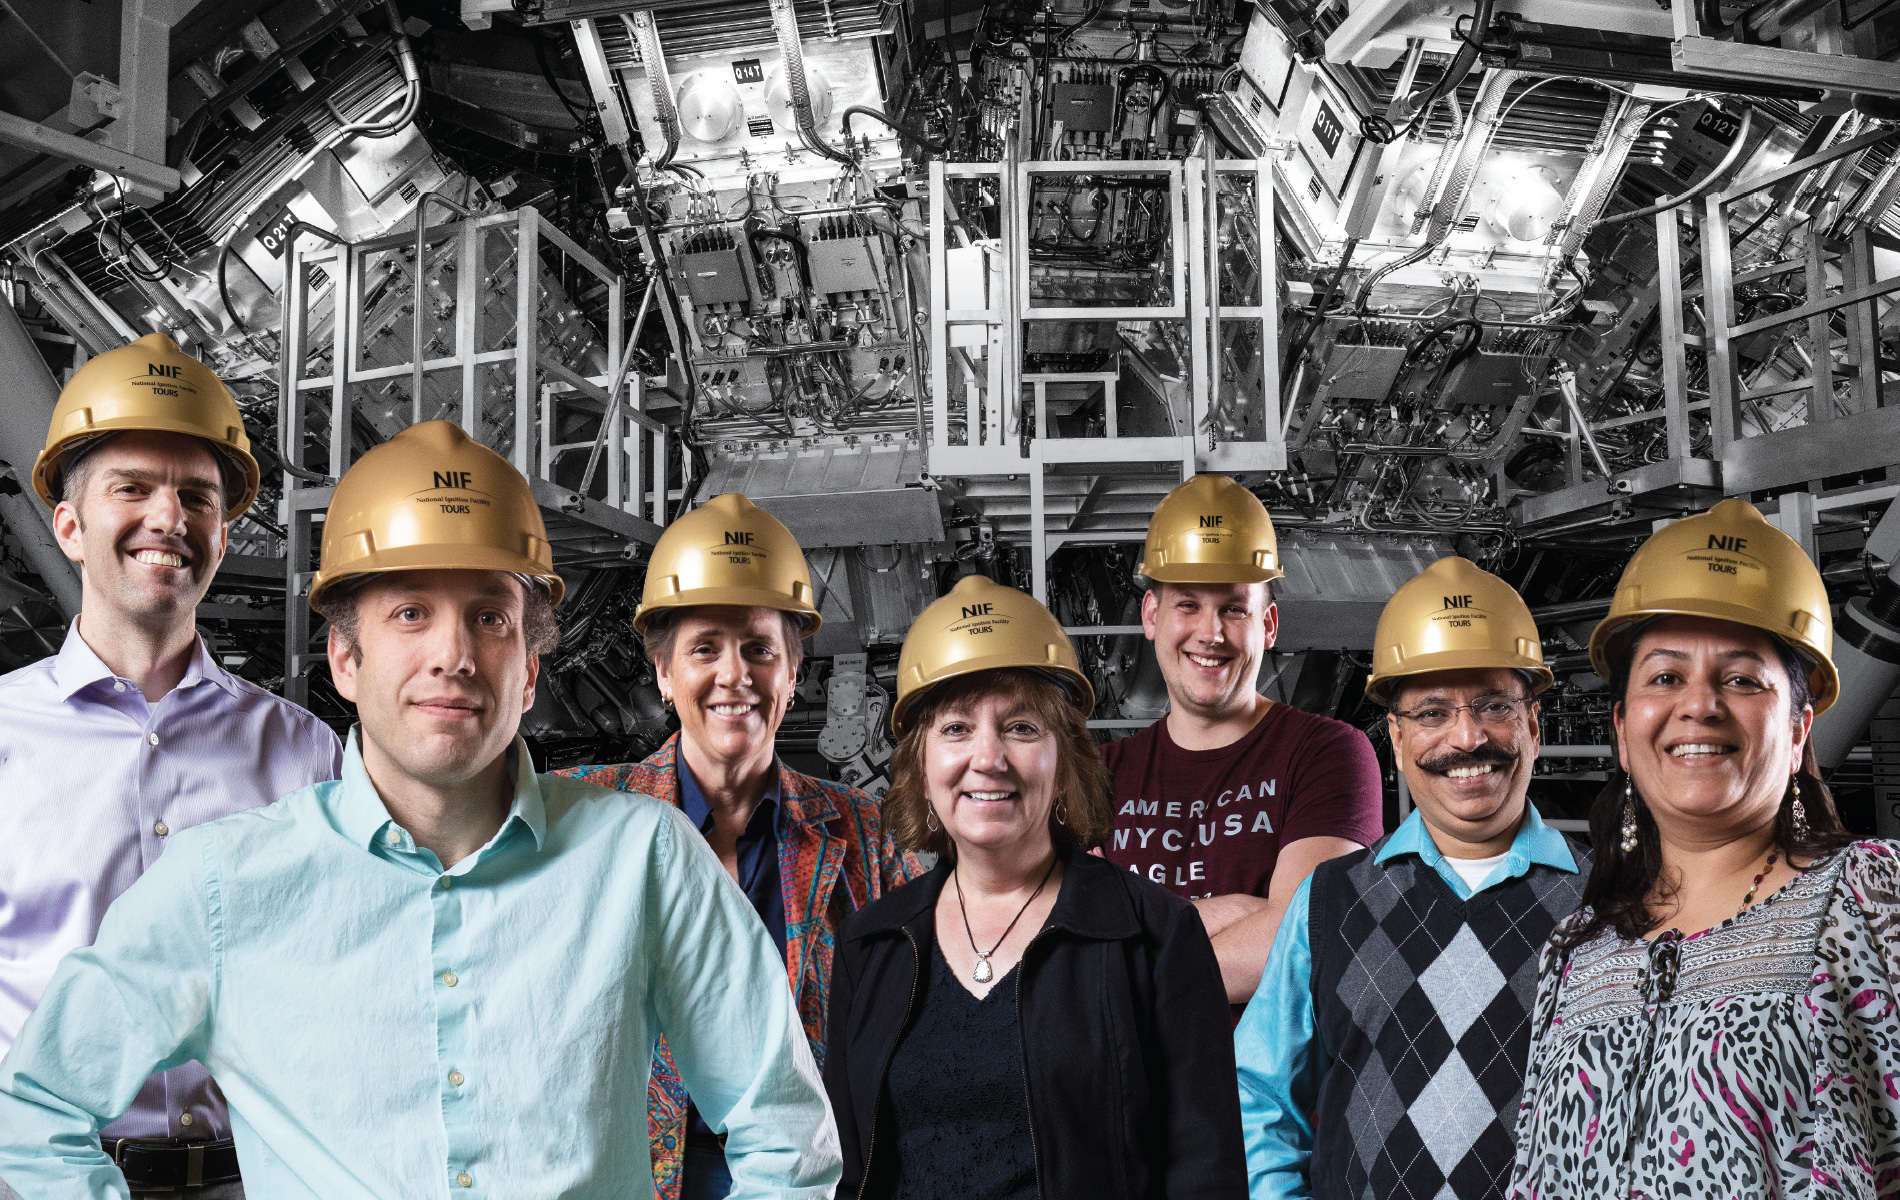 Scientists in gold construction caps pose in front of machinery